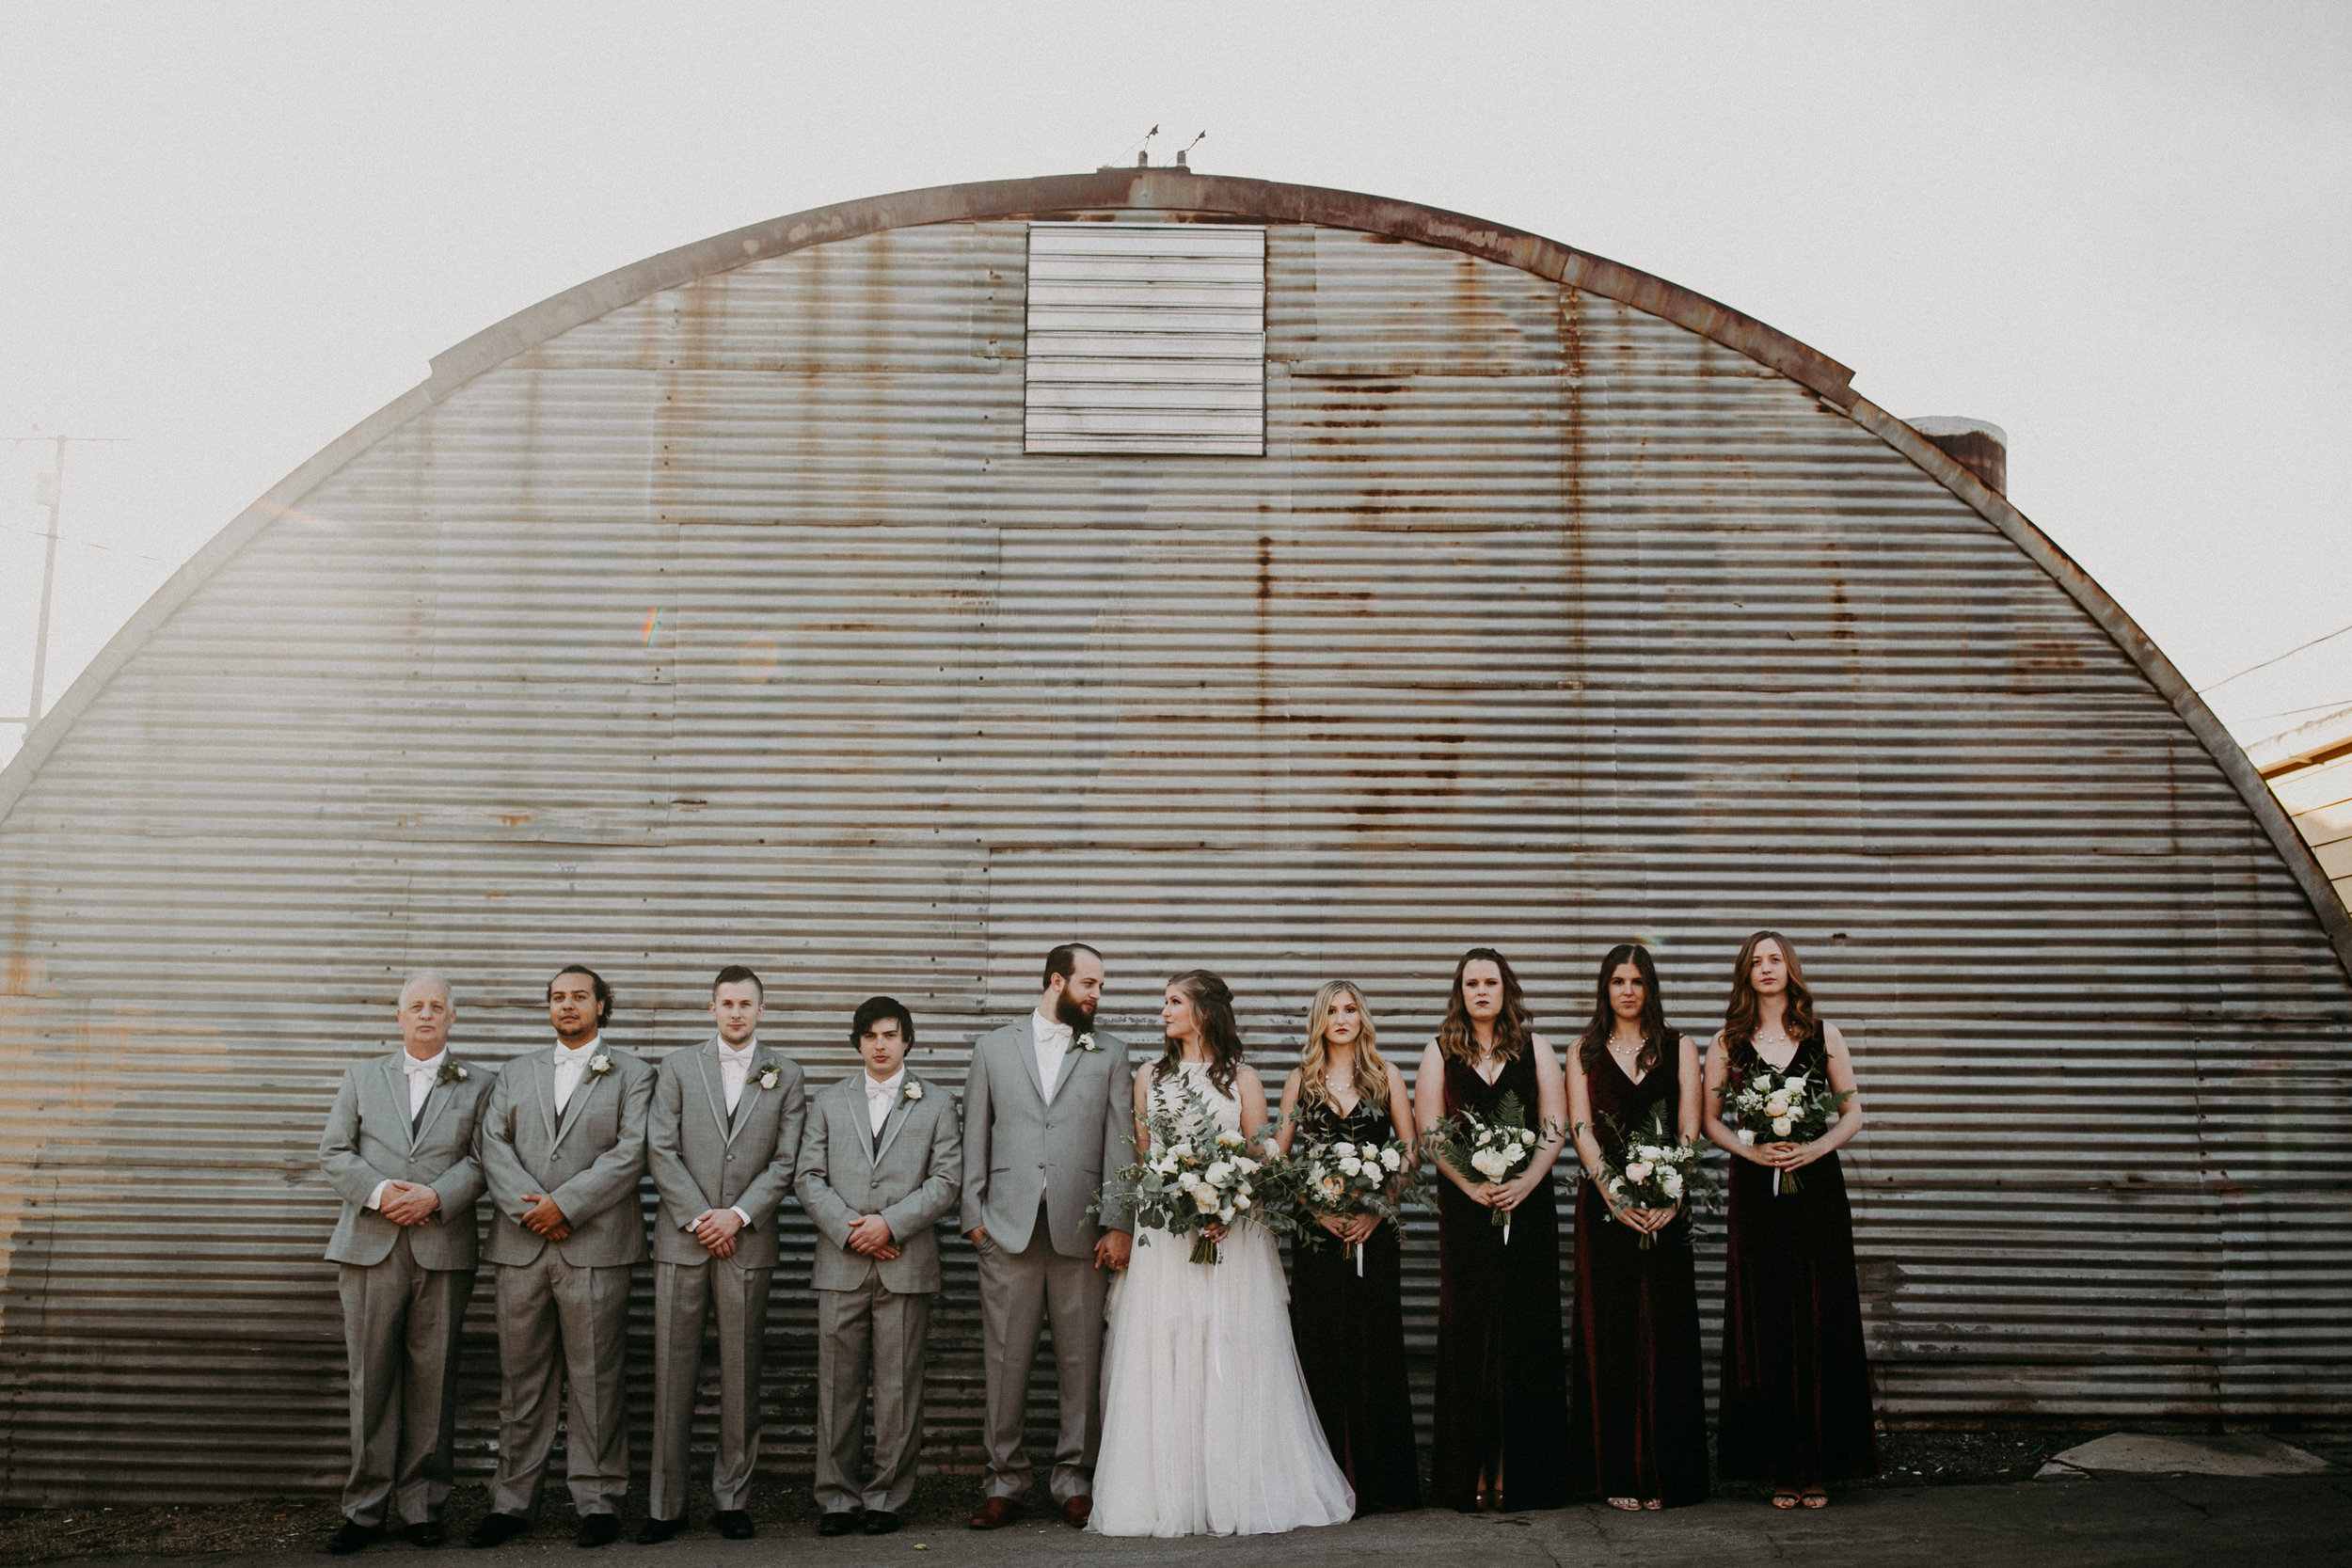 Smoky Hollow Studios Wedding Anne & Lewis Emily Magers Photography-222.jpg